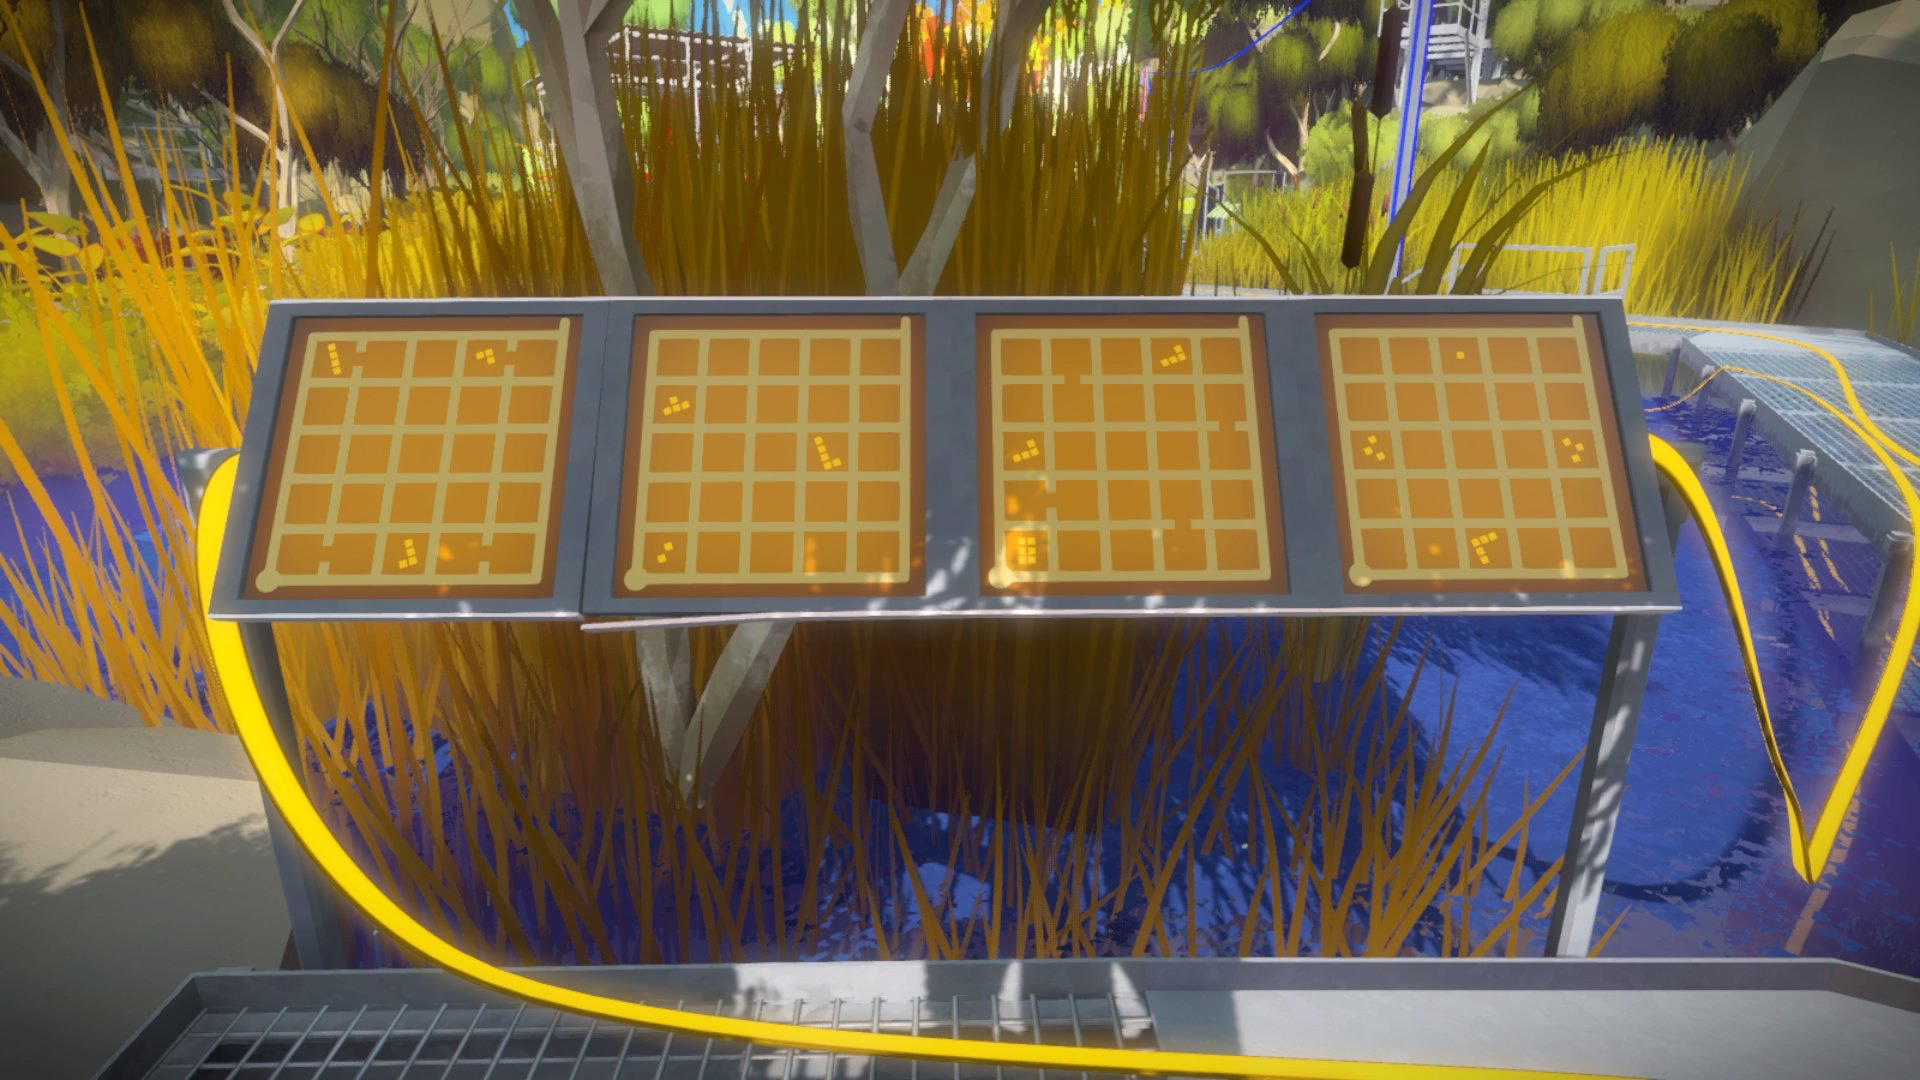 How to Solve All the Puzzles in The Witness - Guide - Push Square